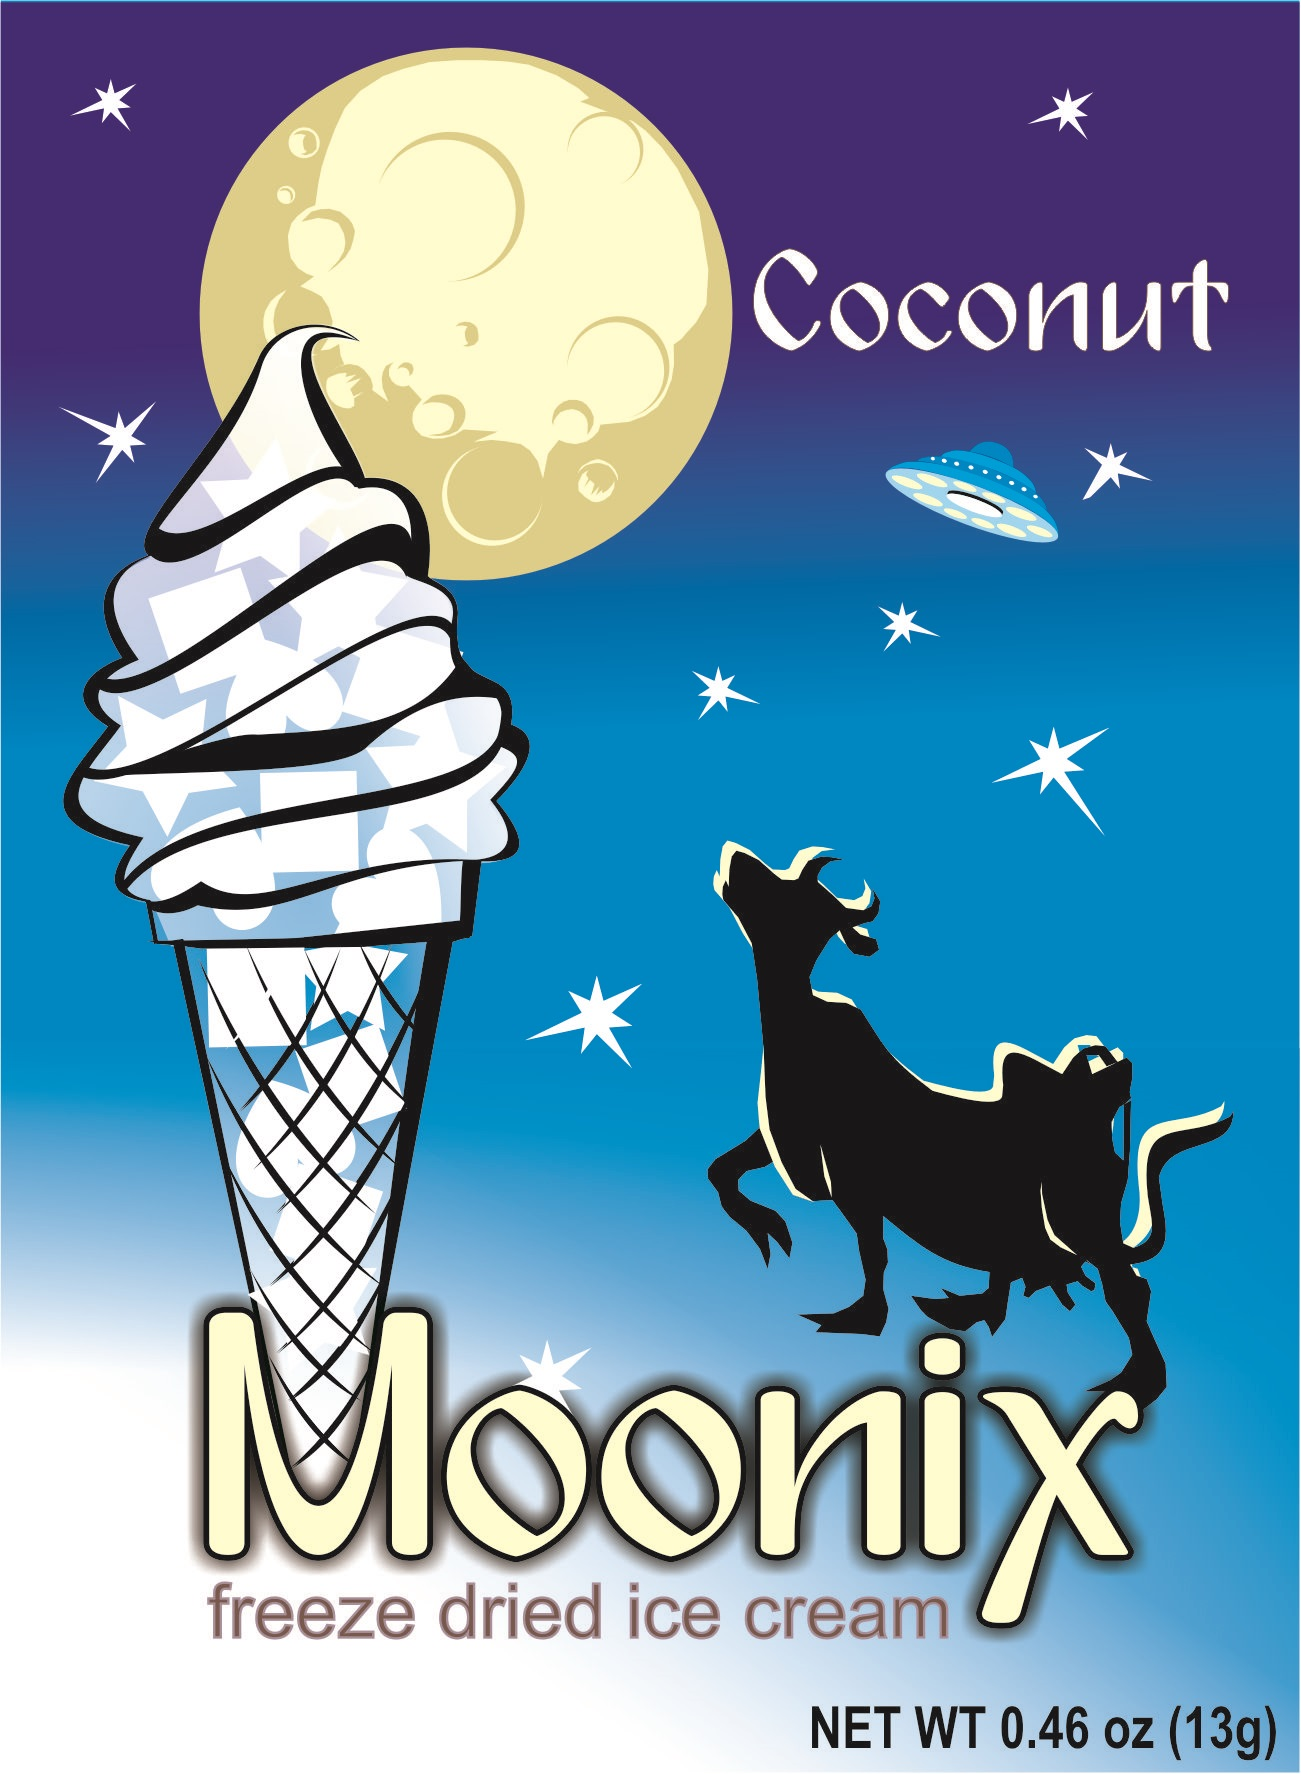 Moonix Freeze Dried Ice Cream Coconut